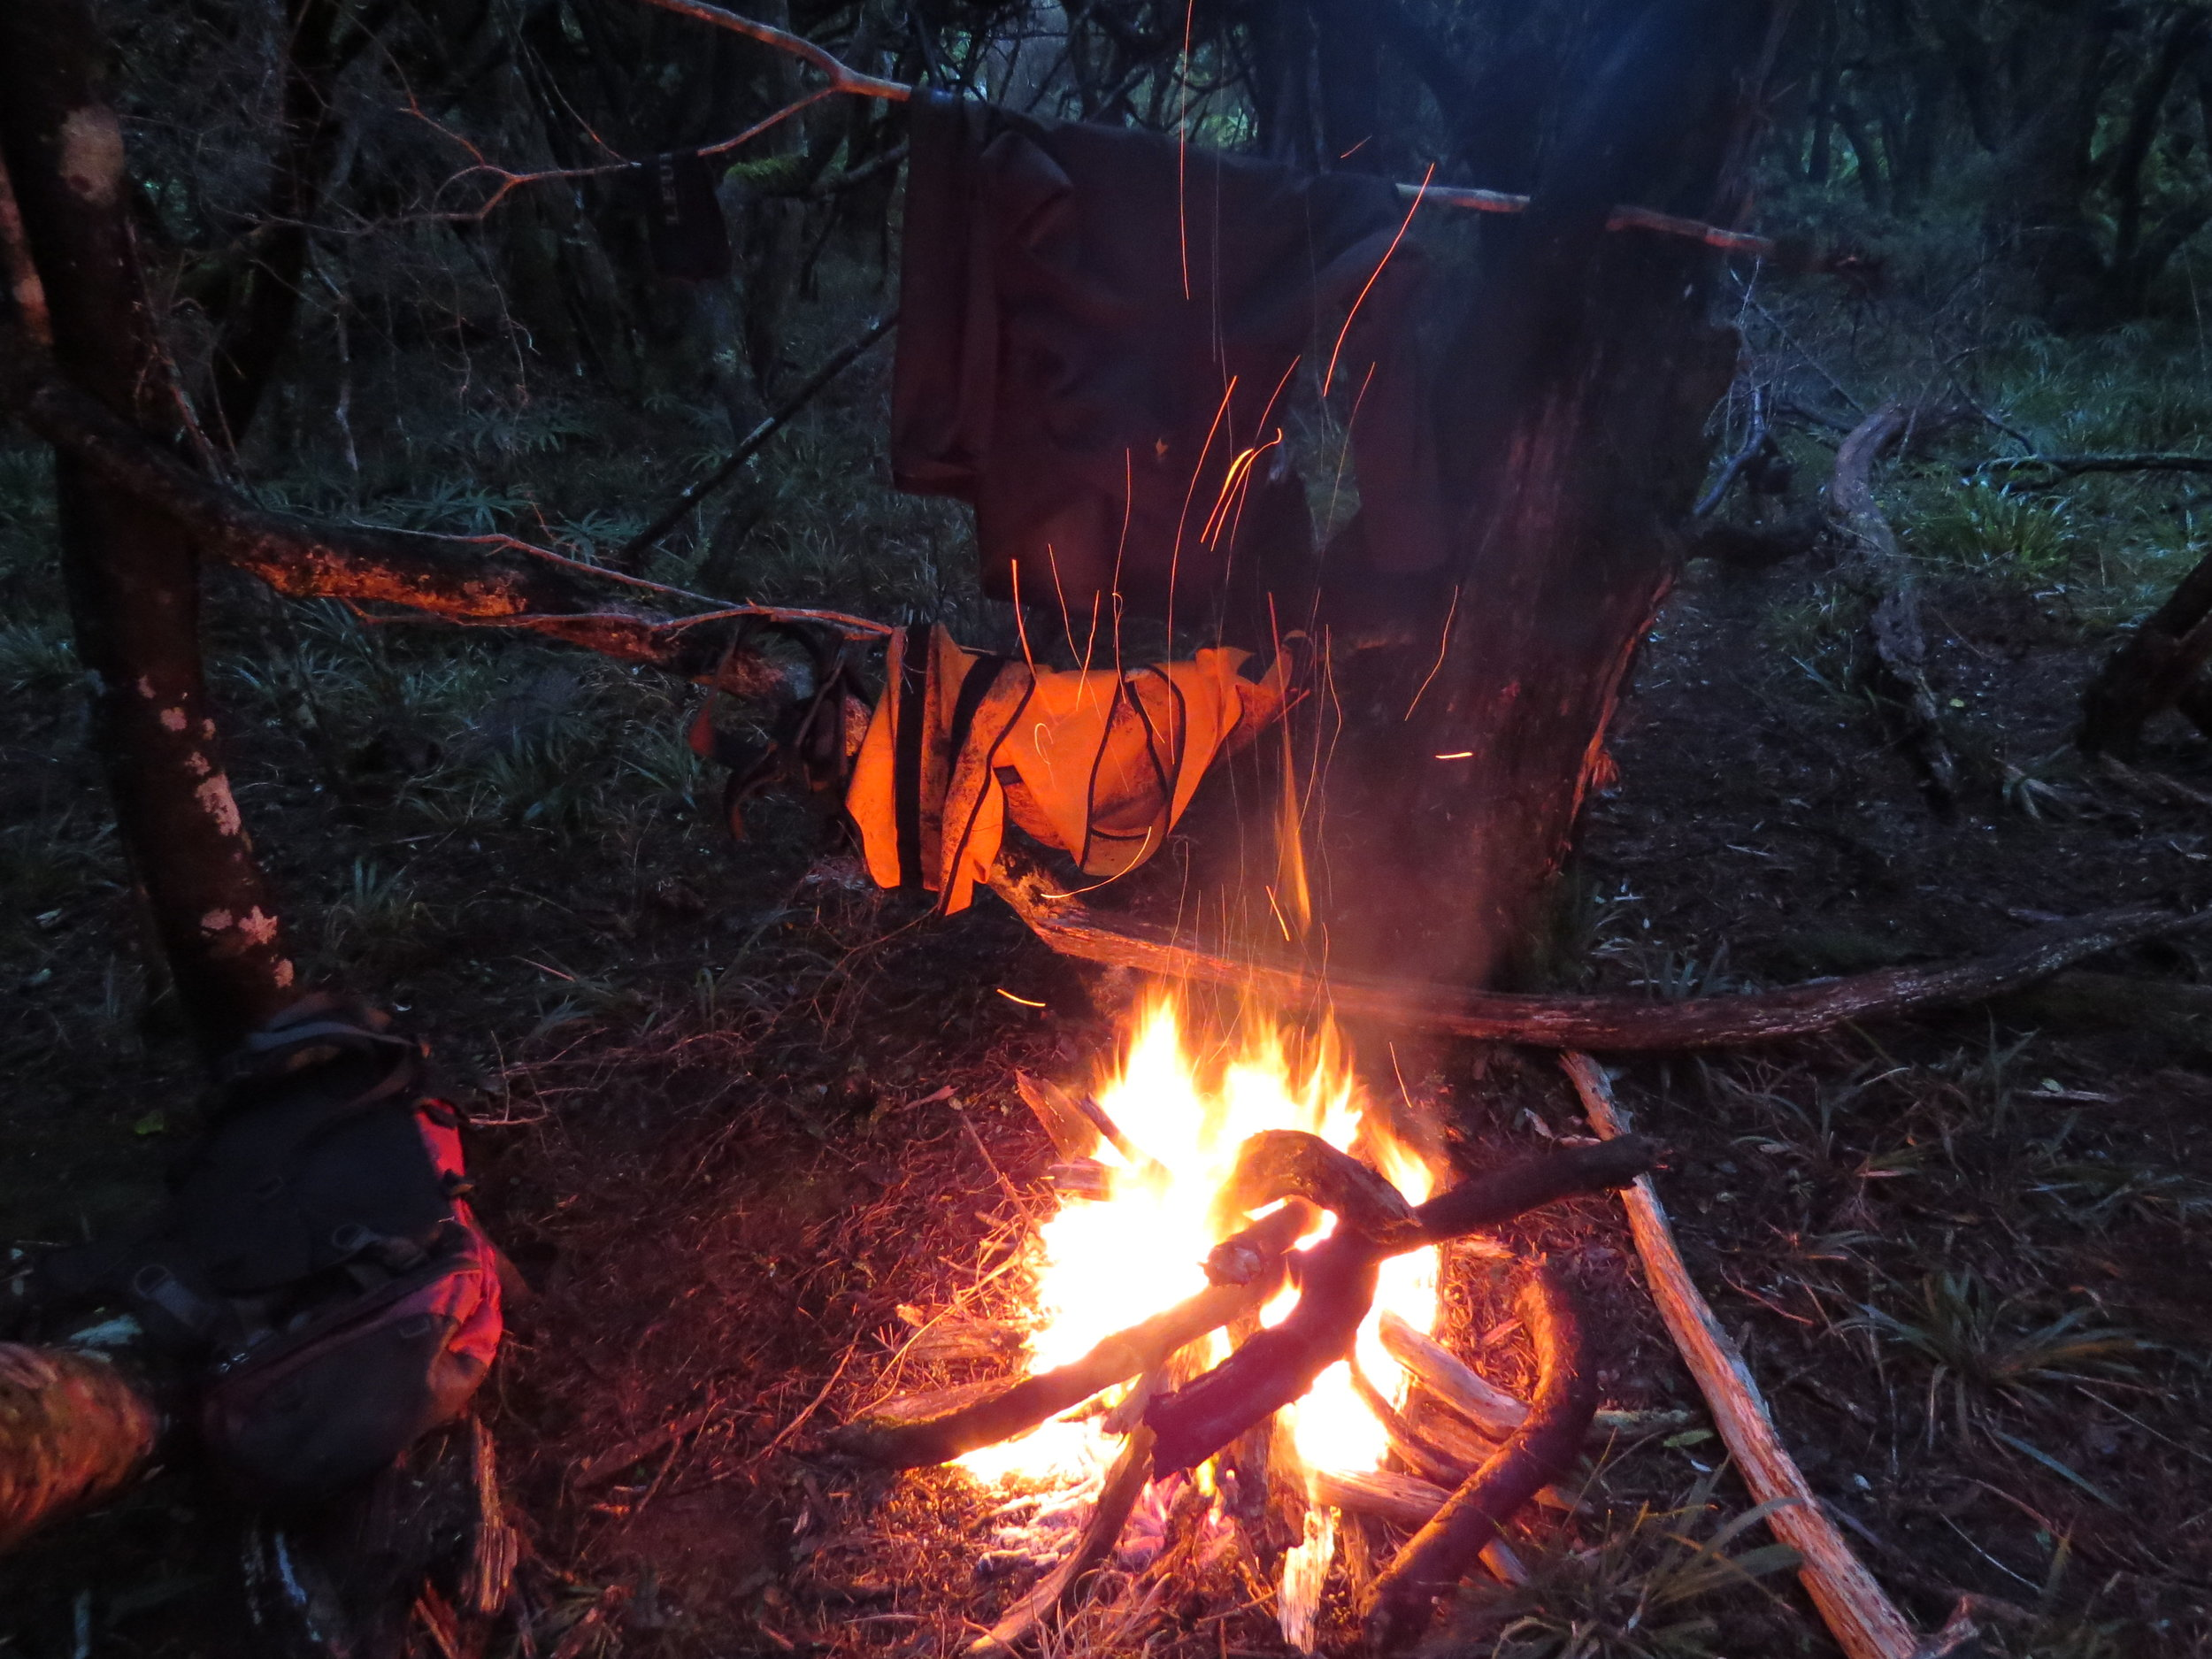 Drying gear next to a camp fire each evening was crucial for staying out for multiple days on Stewart Island, being dry and comfortable at the start of each morning is better than the alternative!